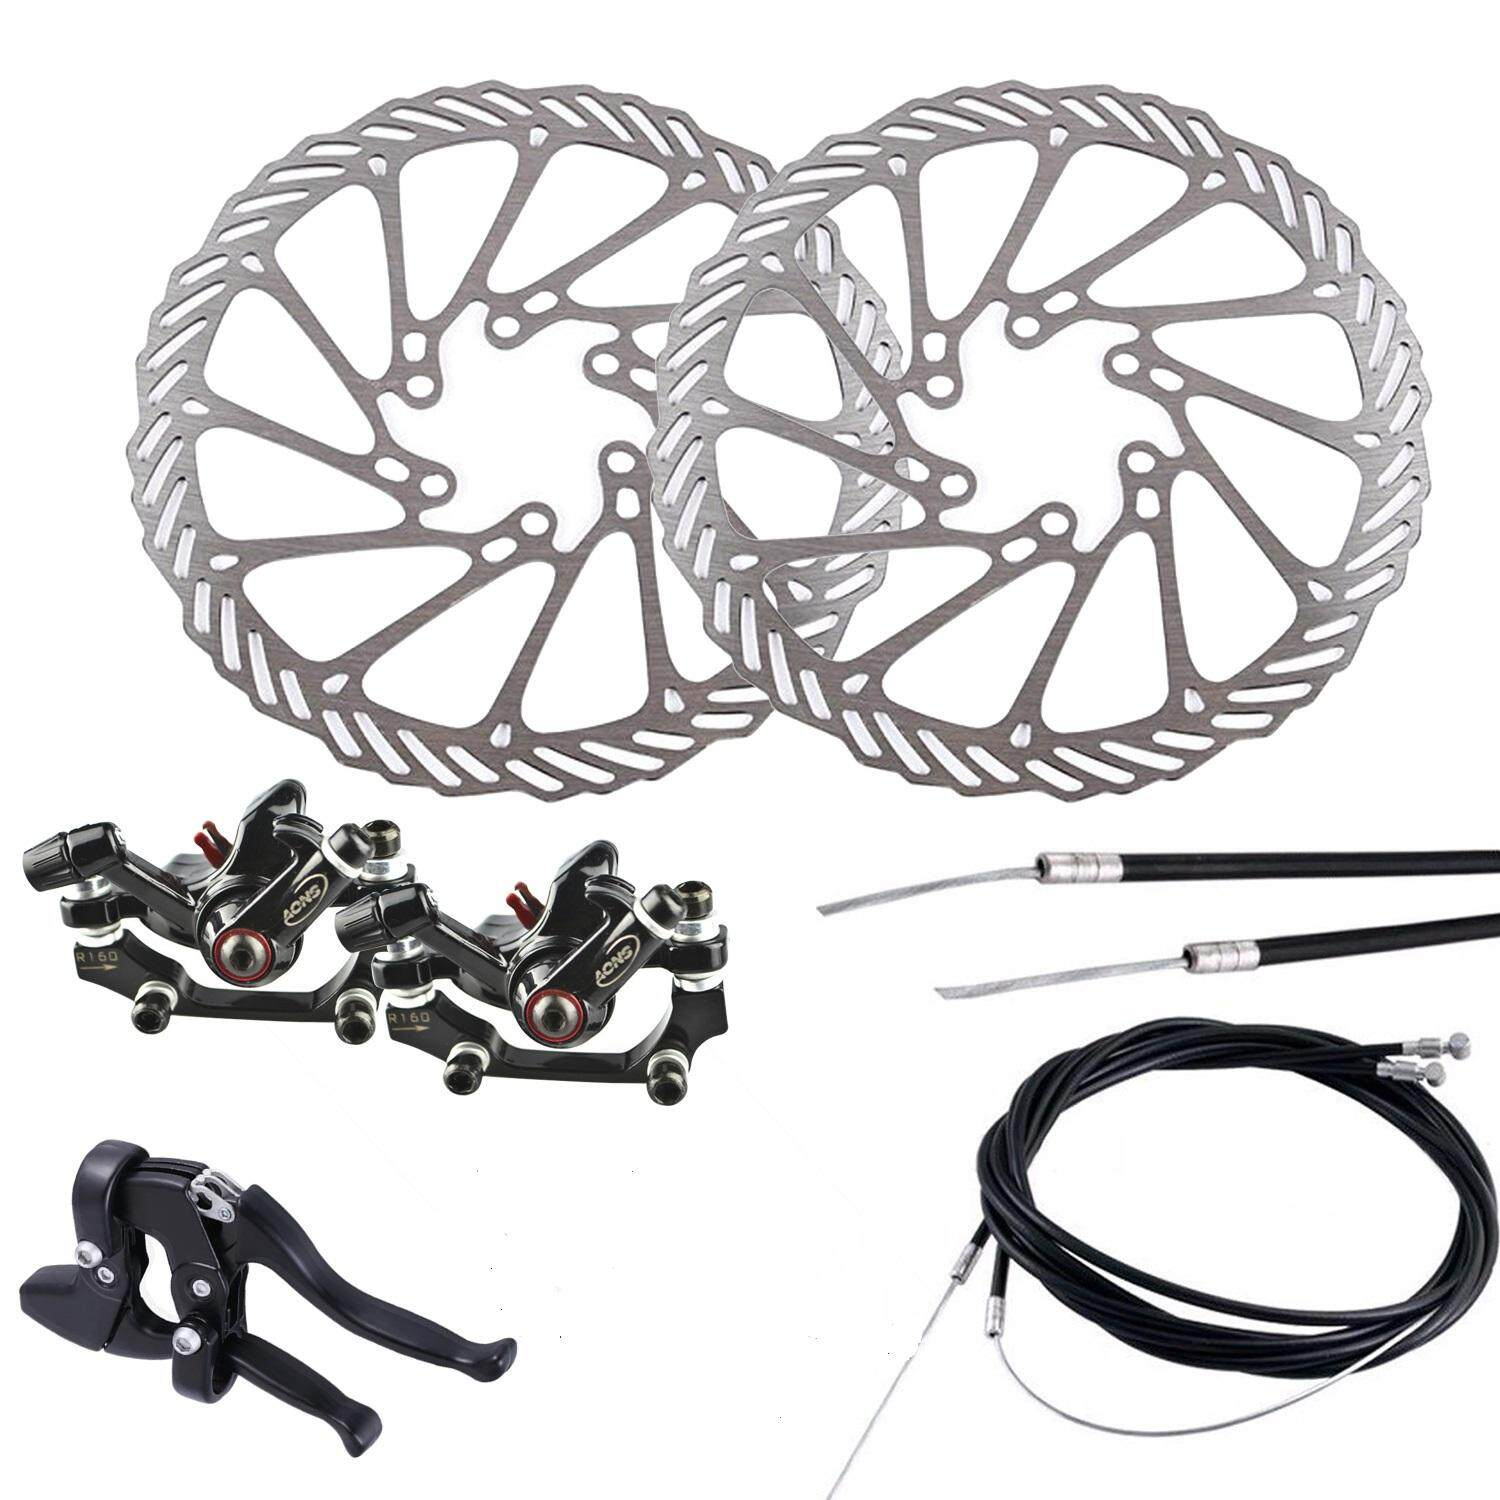 Features 2pcs Bike Bicycle Cycling Clean Sweep Disc Brake Rotors Rotor 160 Mm Avid G3cs Bb5 Mountain Mechanical Front Rear Set With G3 160mm